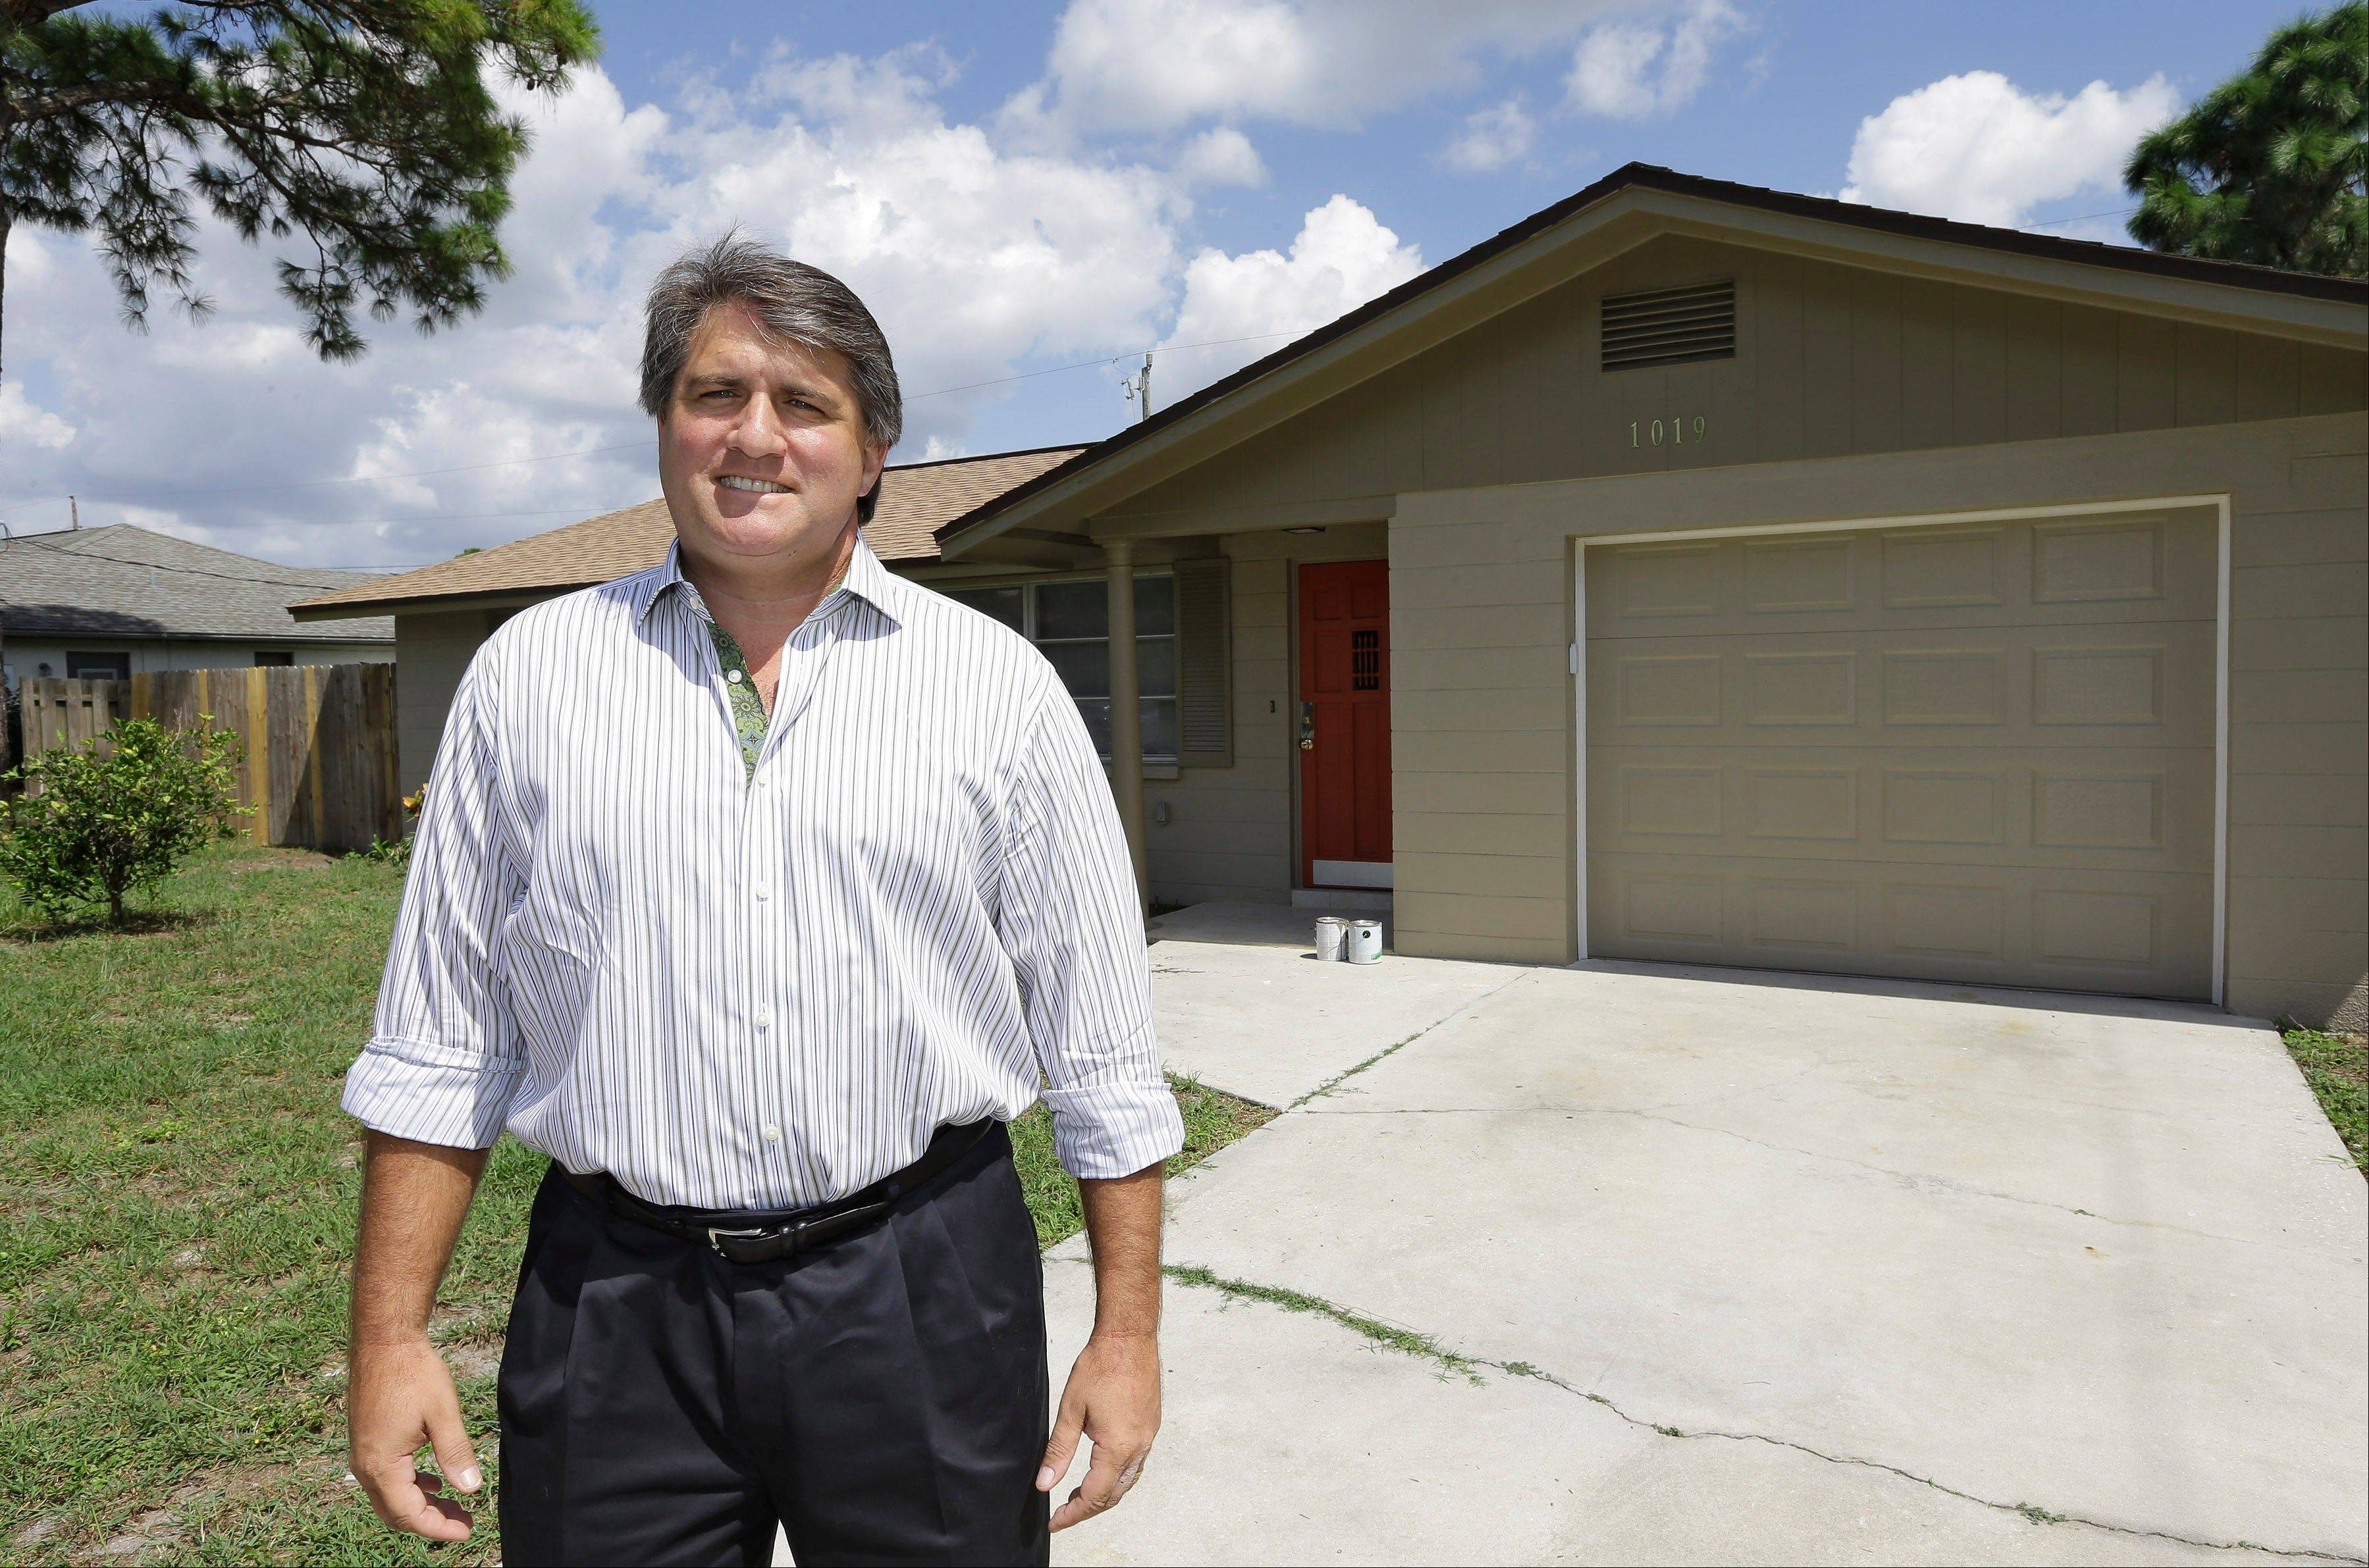 Andrew Neitlich in front of one his investment homes in Venice, Fla.